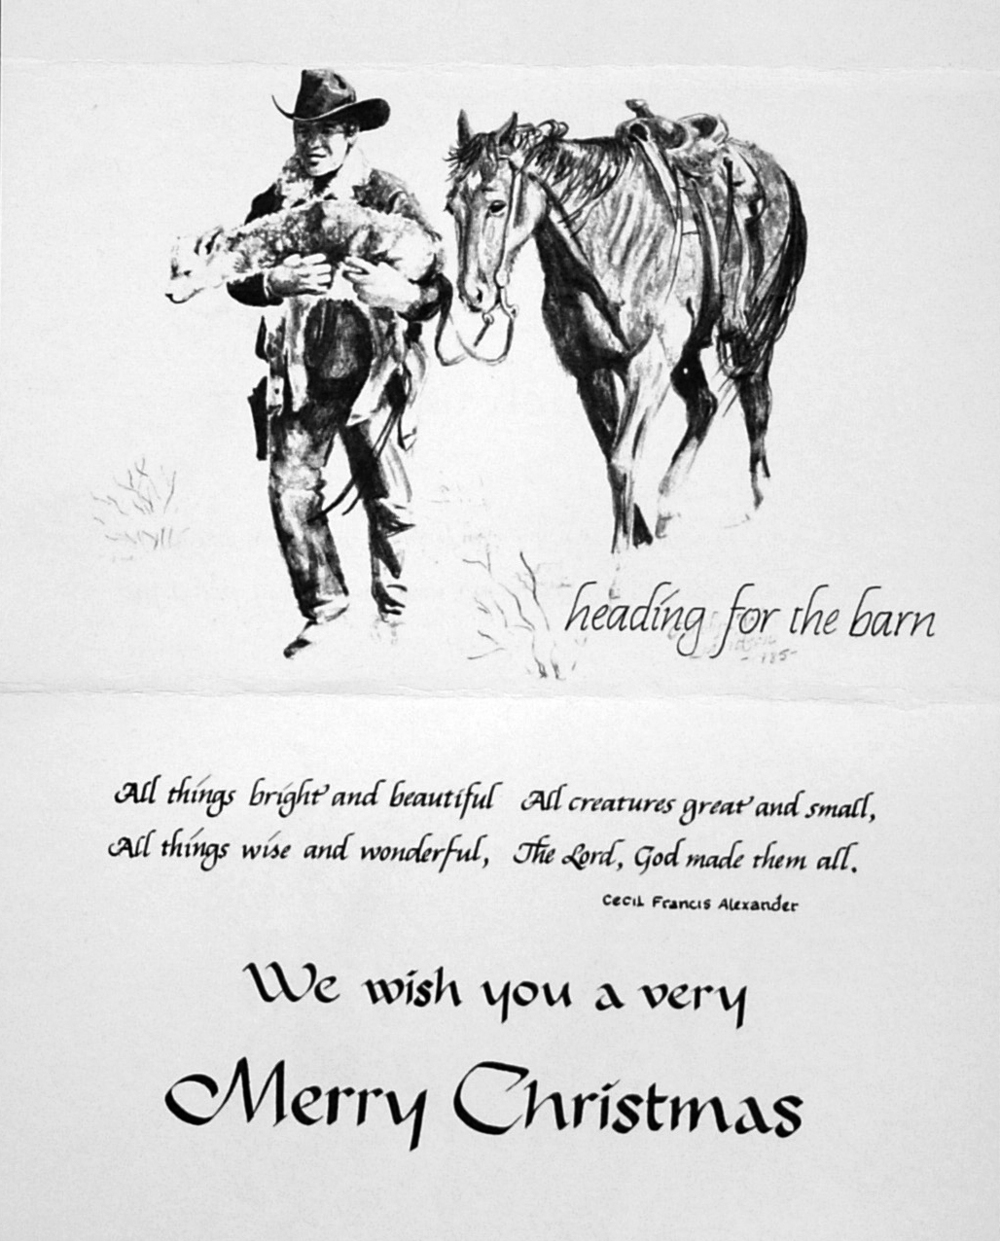 """ heading for the barn""     ""All things bright and beautiful, All creatures great and small, All things wise and wonderful, The Lord, God made them all. -Cecil Francis Alexander""    ""We wish you a very Merry Christmas""    [Cowboy]"